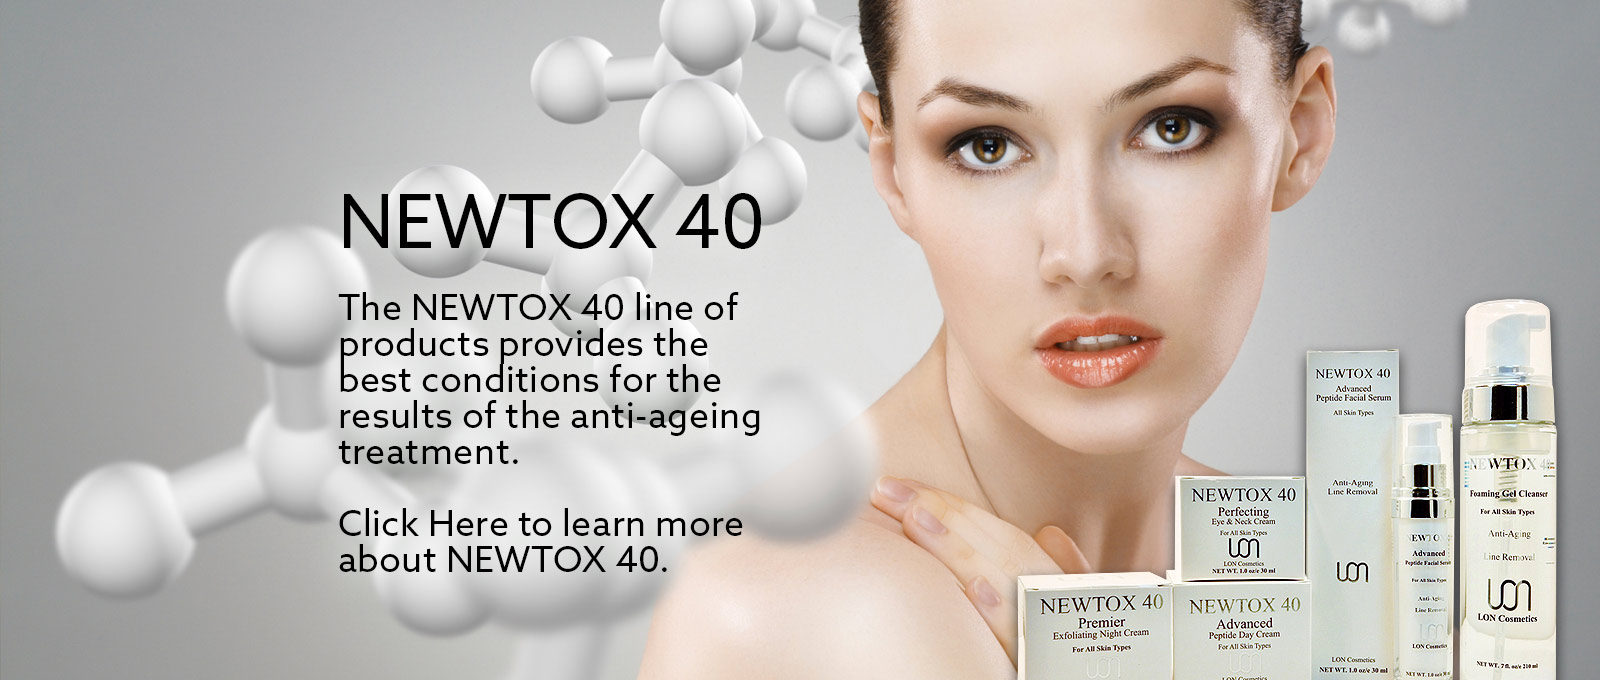 The Newtox line of products provides the best conditions for the results of the anti-aging treatment.